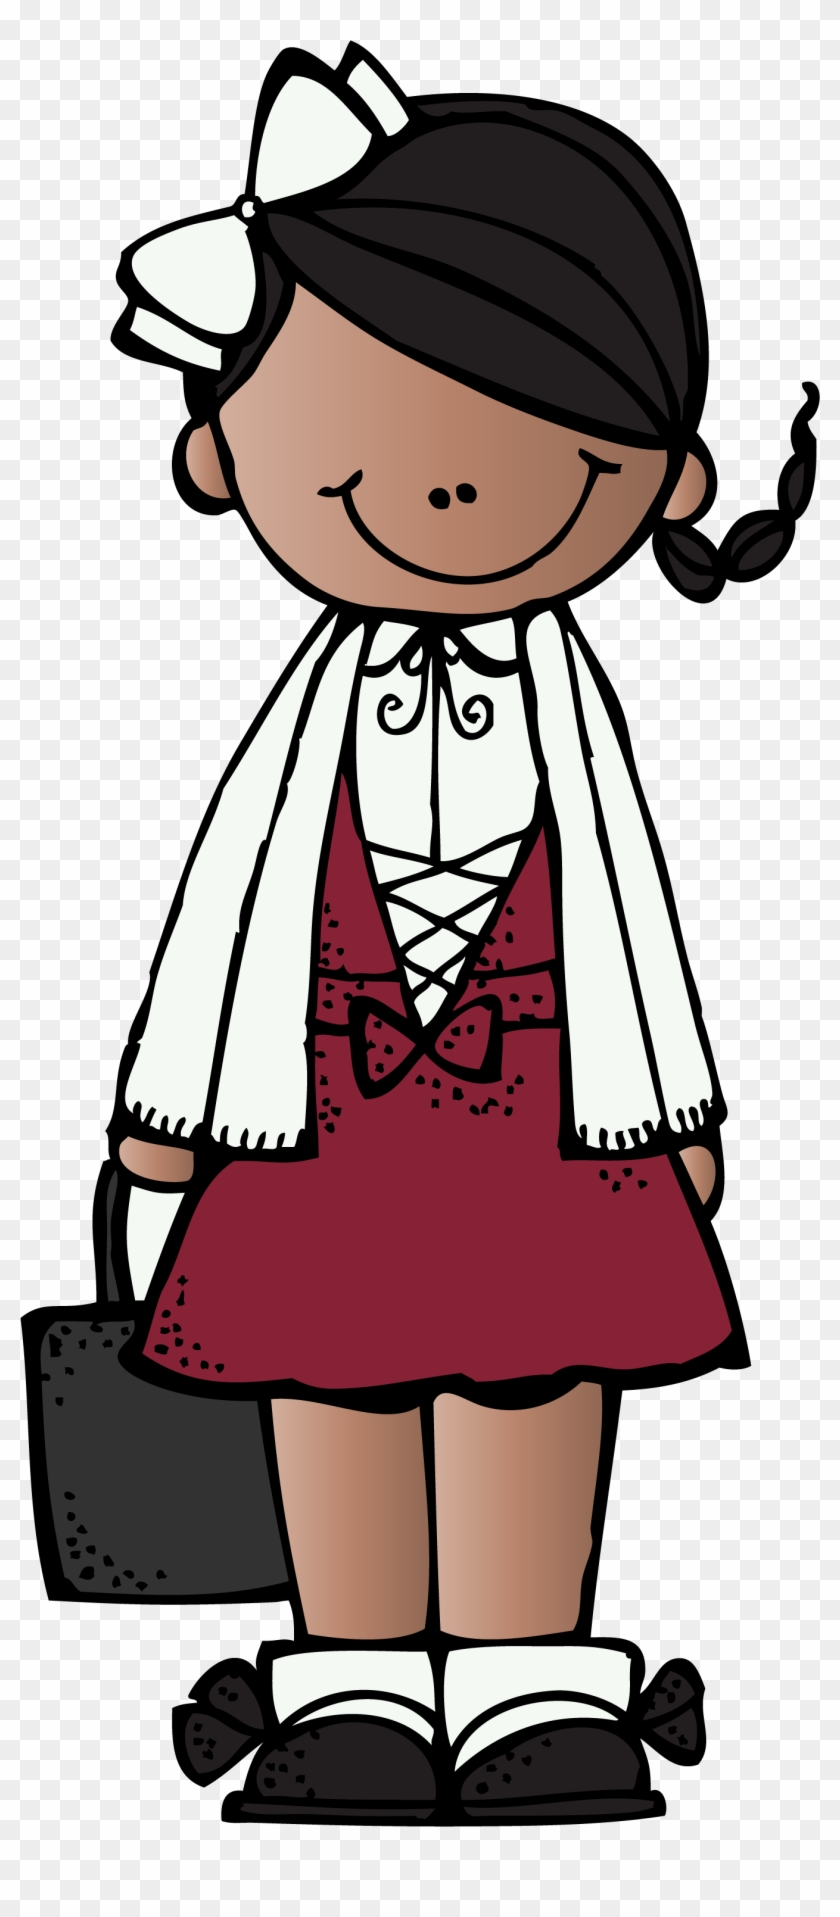 medium resolution of google search educlips school clipart elementary cartoon pictures of ruby bridges hd